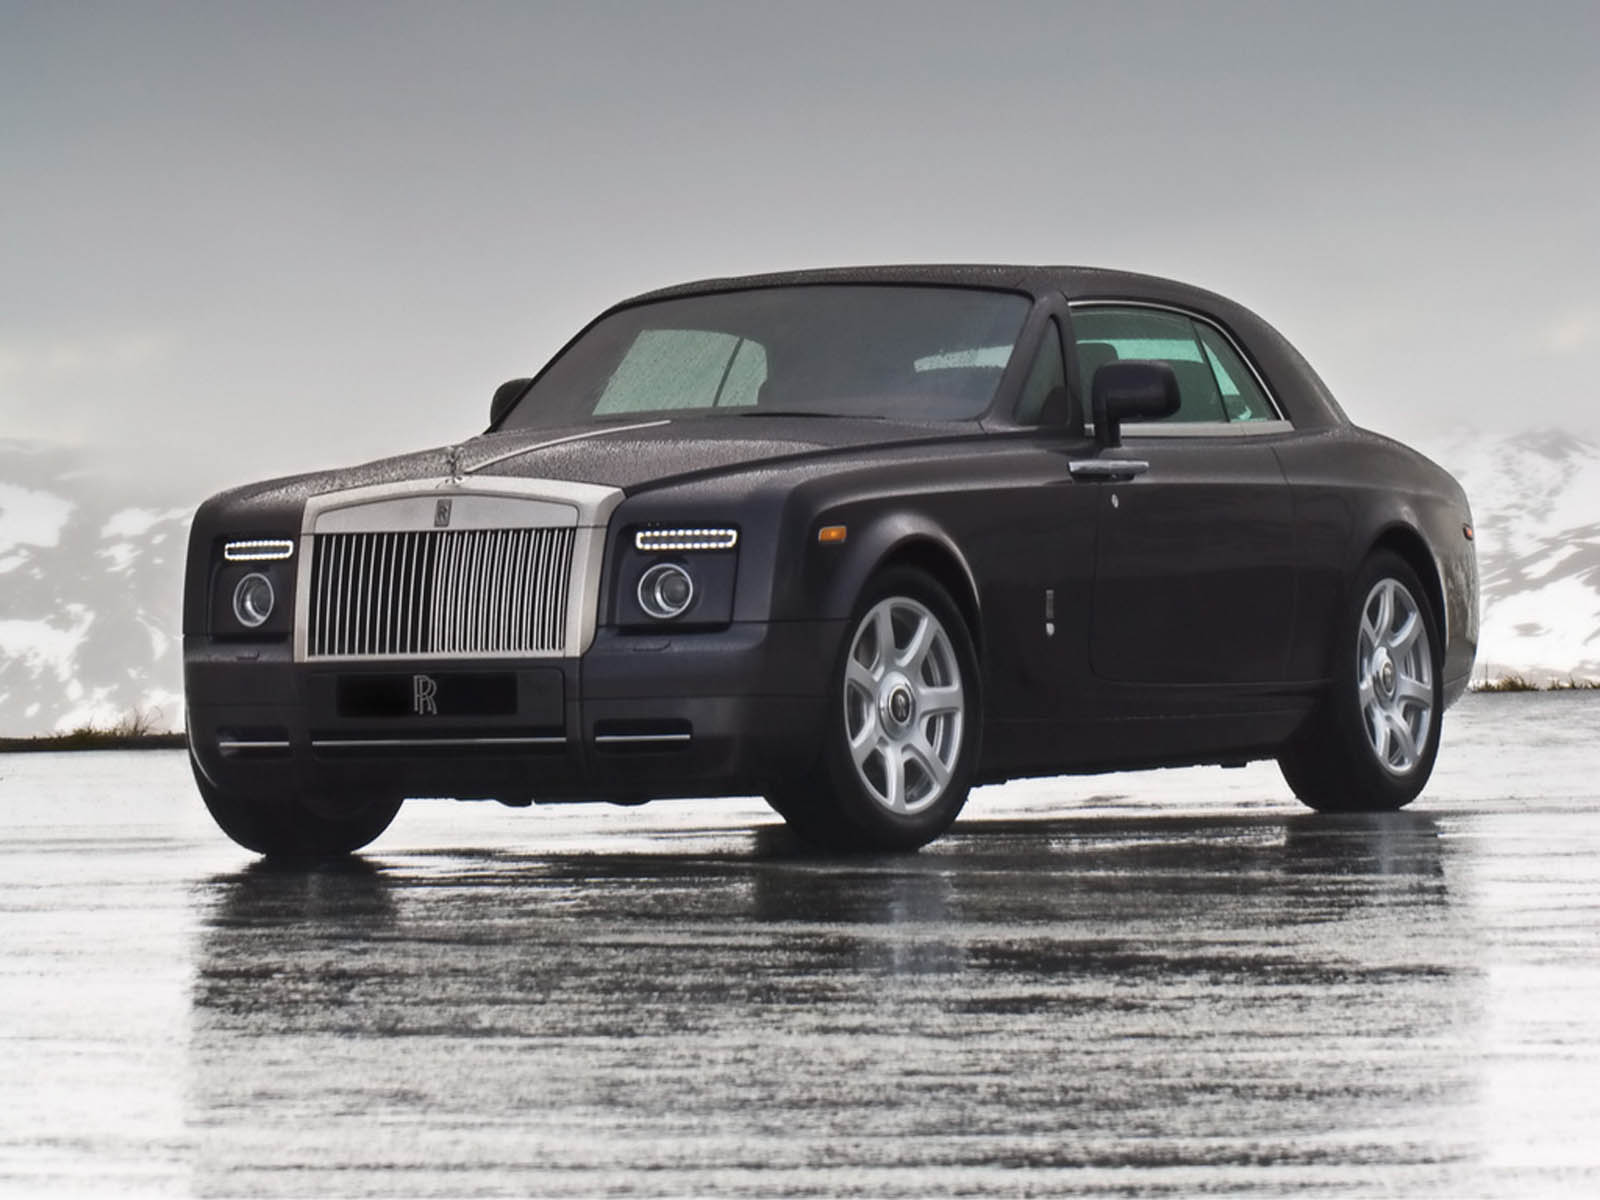 wallpapers rolls royce phantom coupe car wallpapers. Black Bedroom Furniture Sets. Home Design Ideas